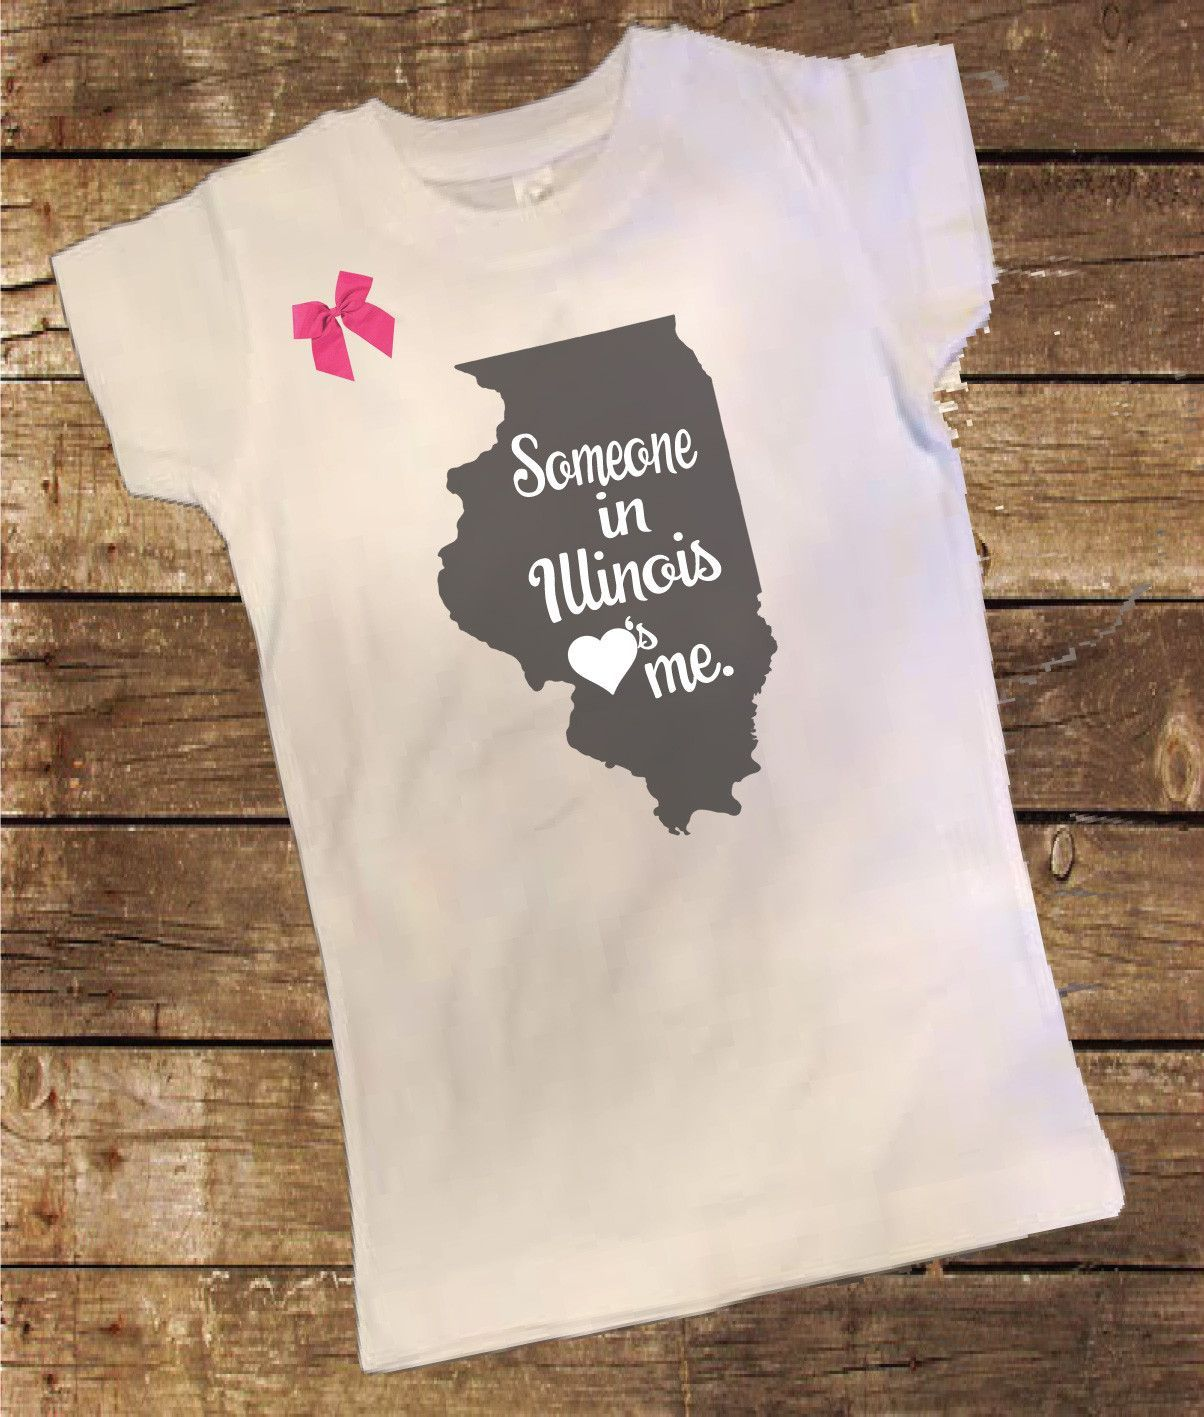 cfdcb382 Illinois Someone Loves me Shirt with Bow. More information. Saved by. Little  Mac Boutique